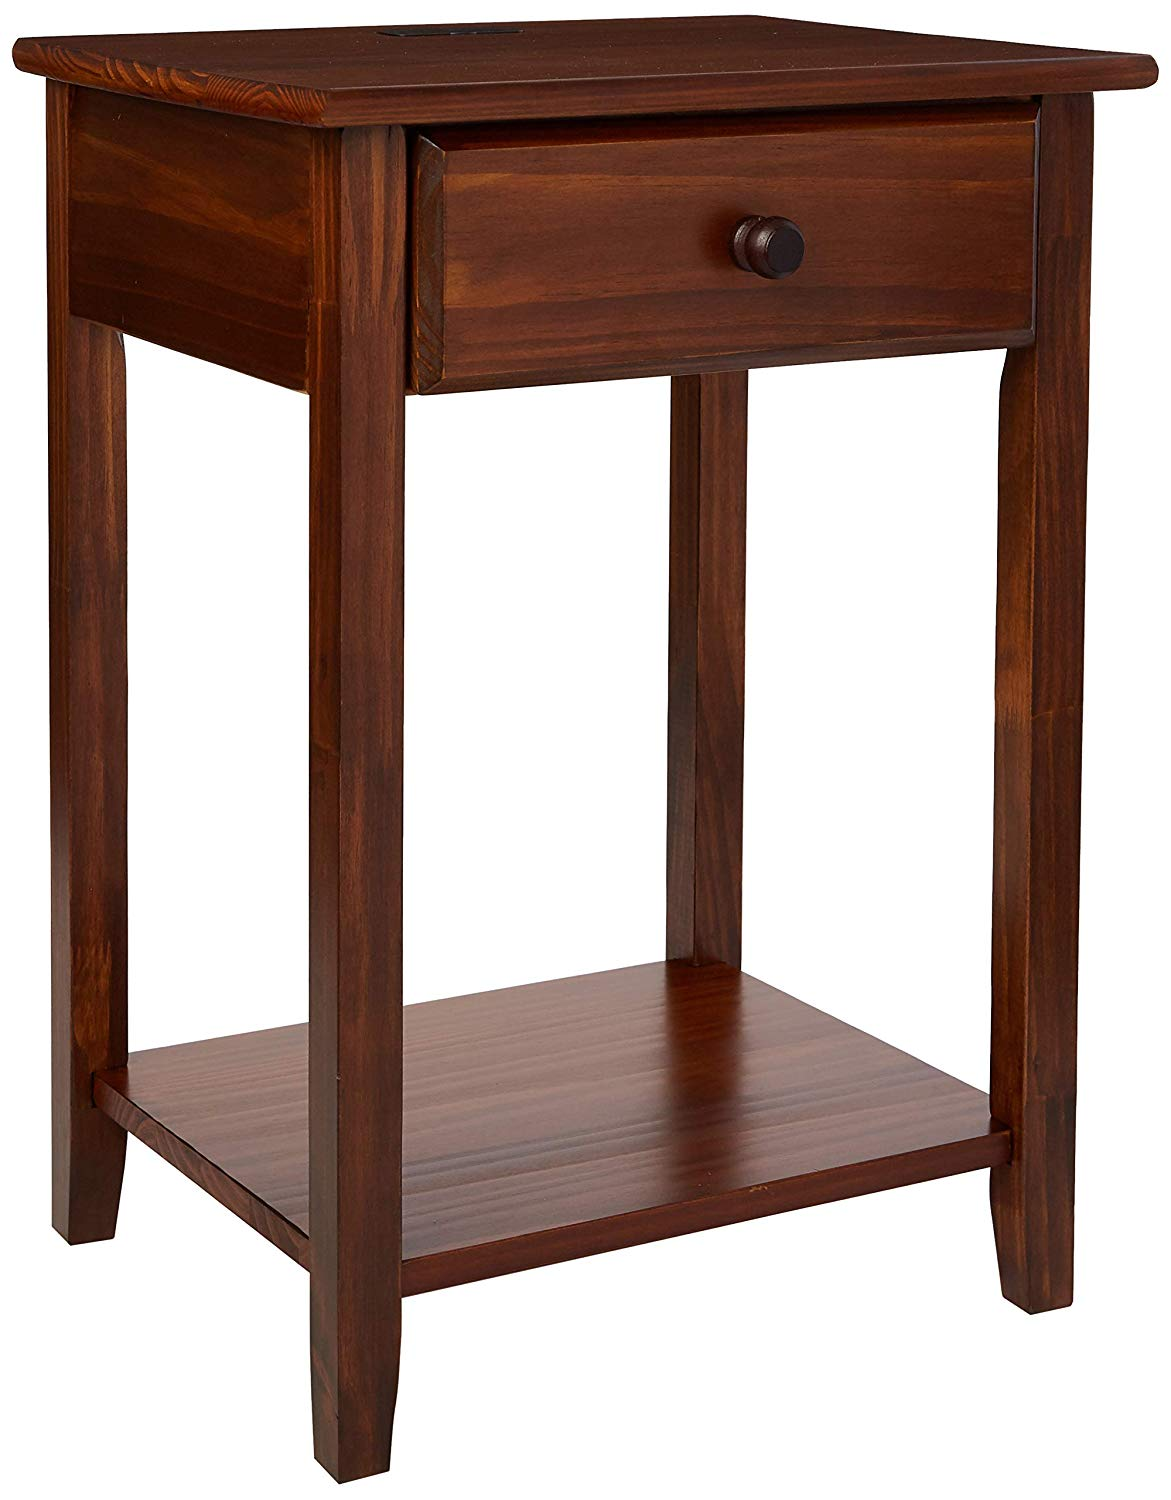 casual home night owl nightstand with usb ports bedroom end tables unique warm brown kitchen dining north shore pedestal table dark leather coffee stanley kids desk conversation